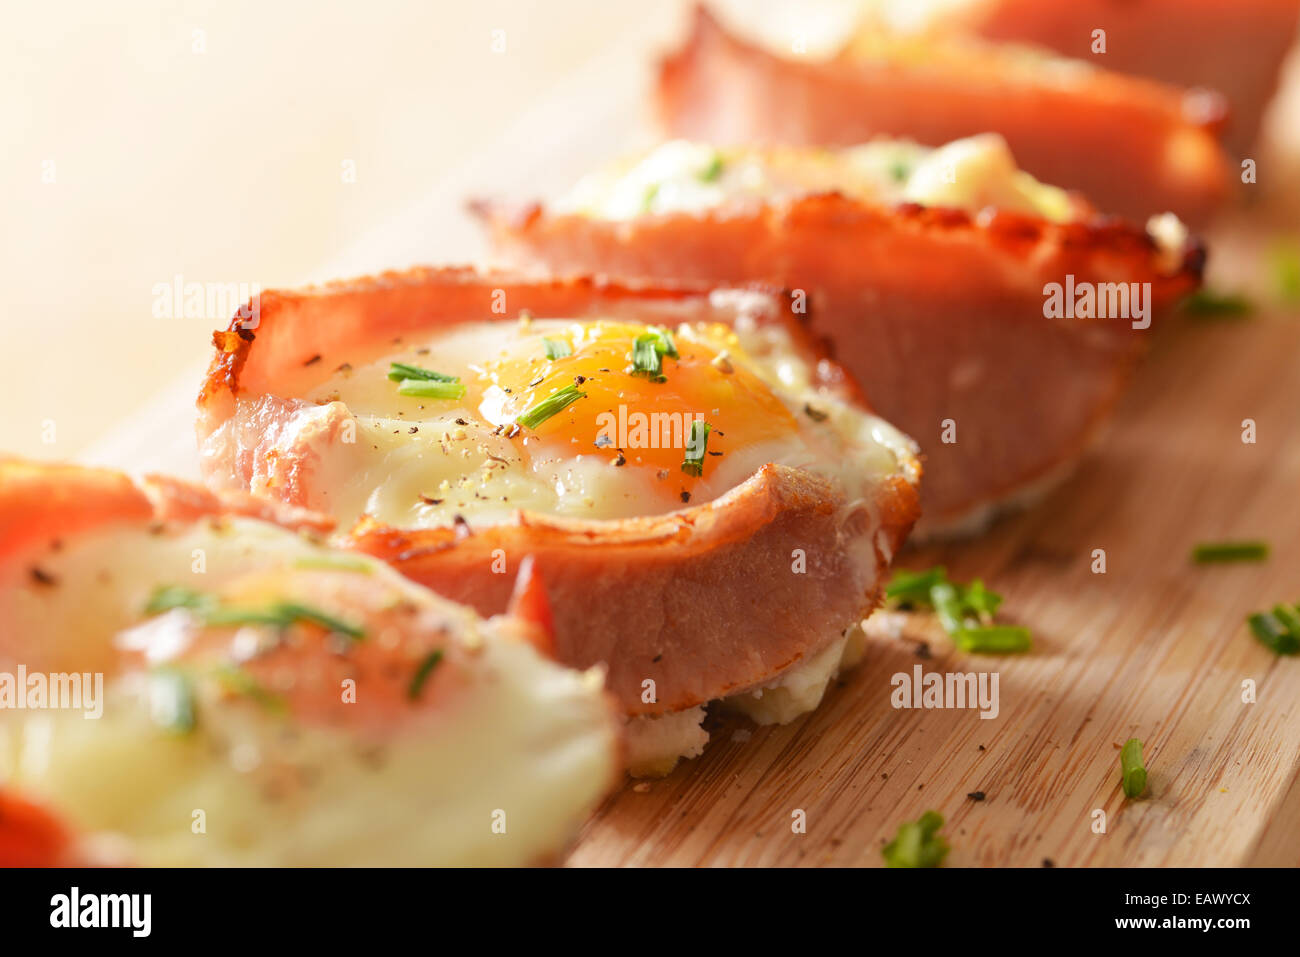 Egg and bacon cupcakes served and ready to eat. - Stock Image